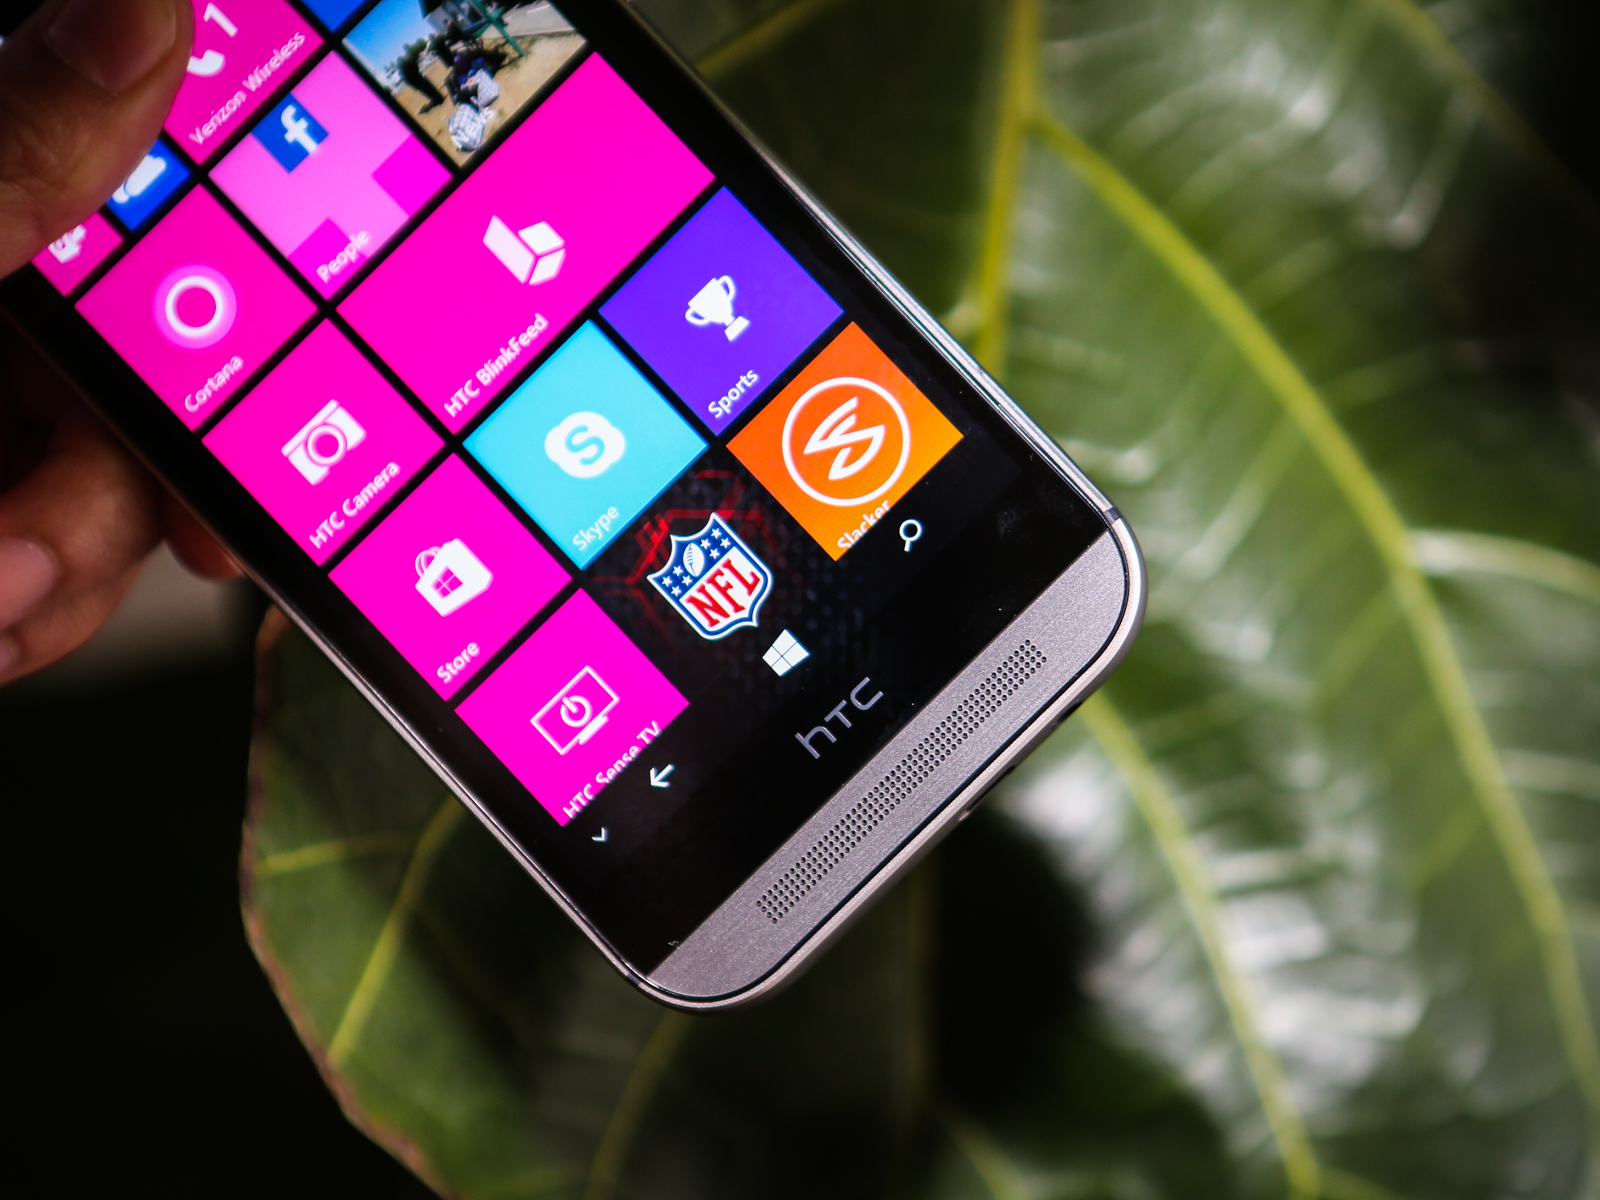 HTC One M8 for Windows (16GB)